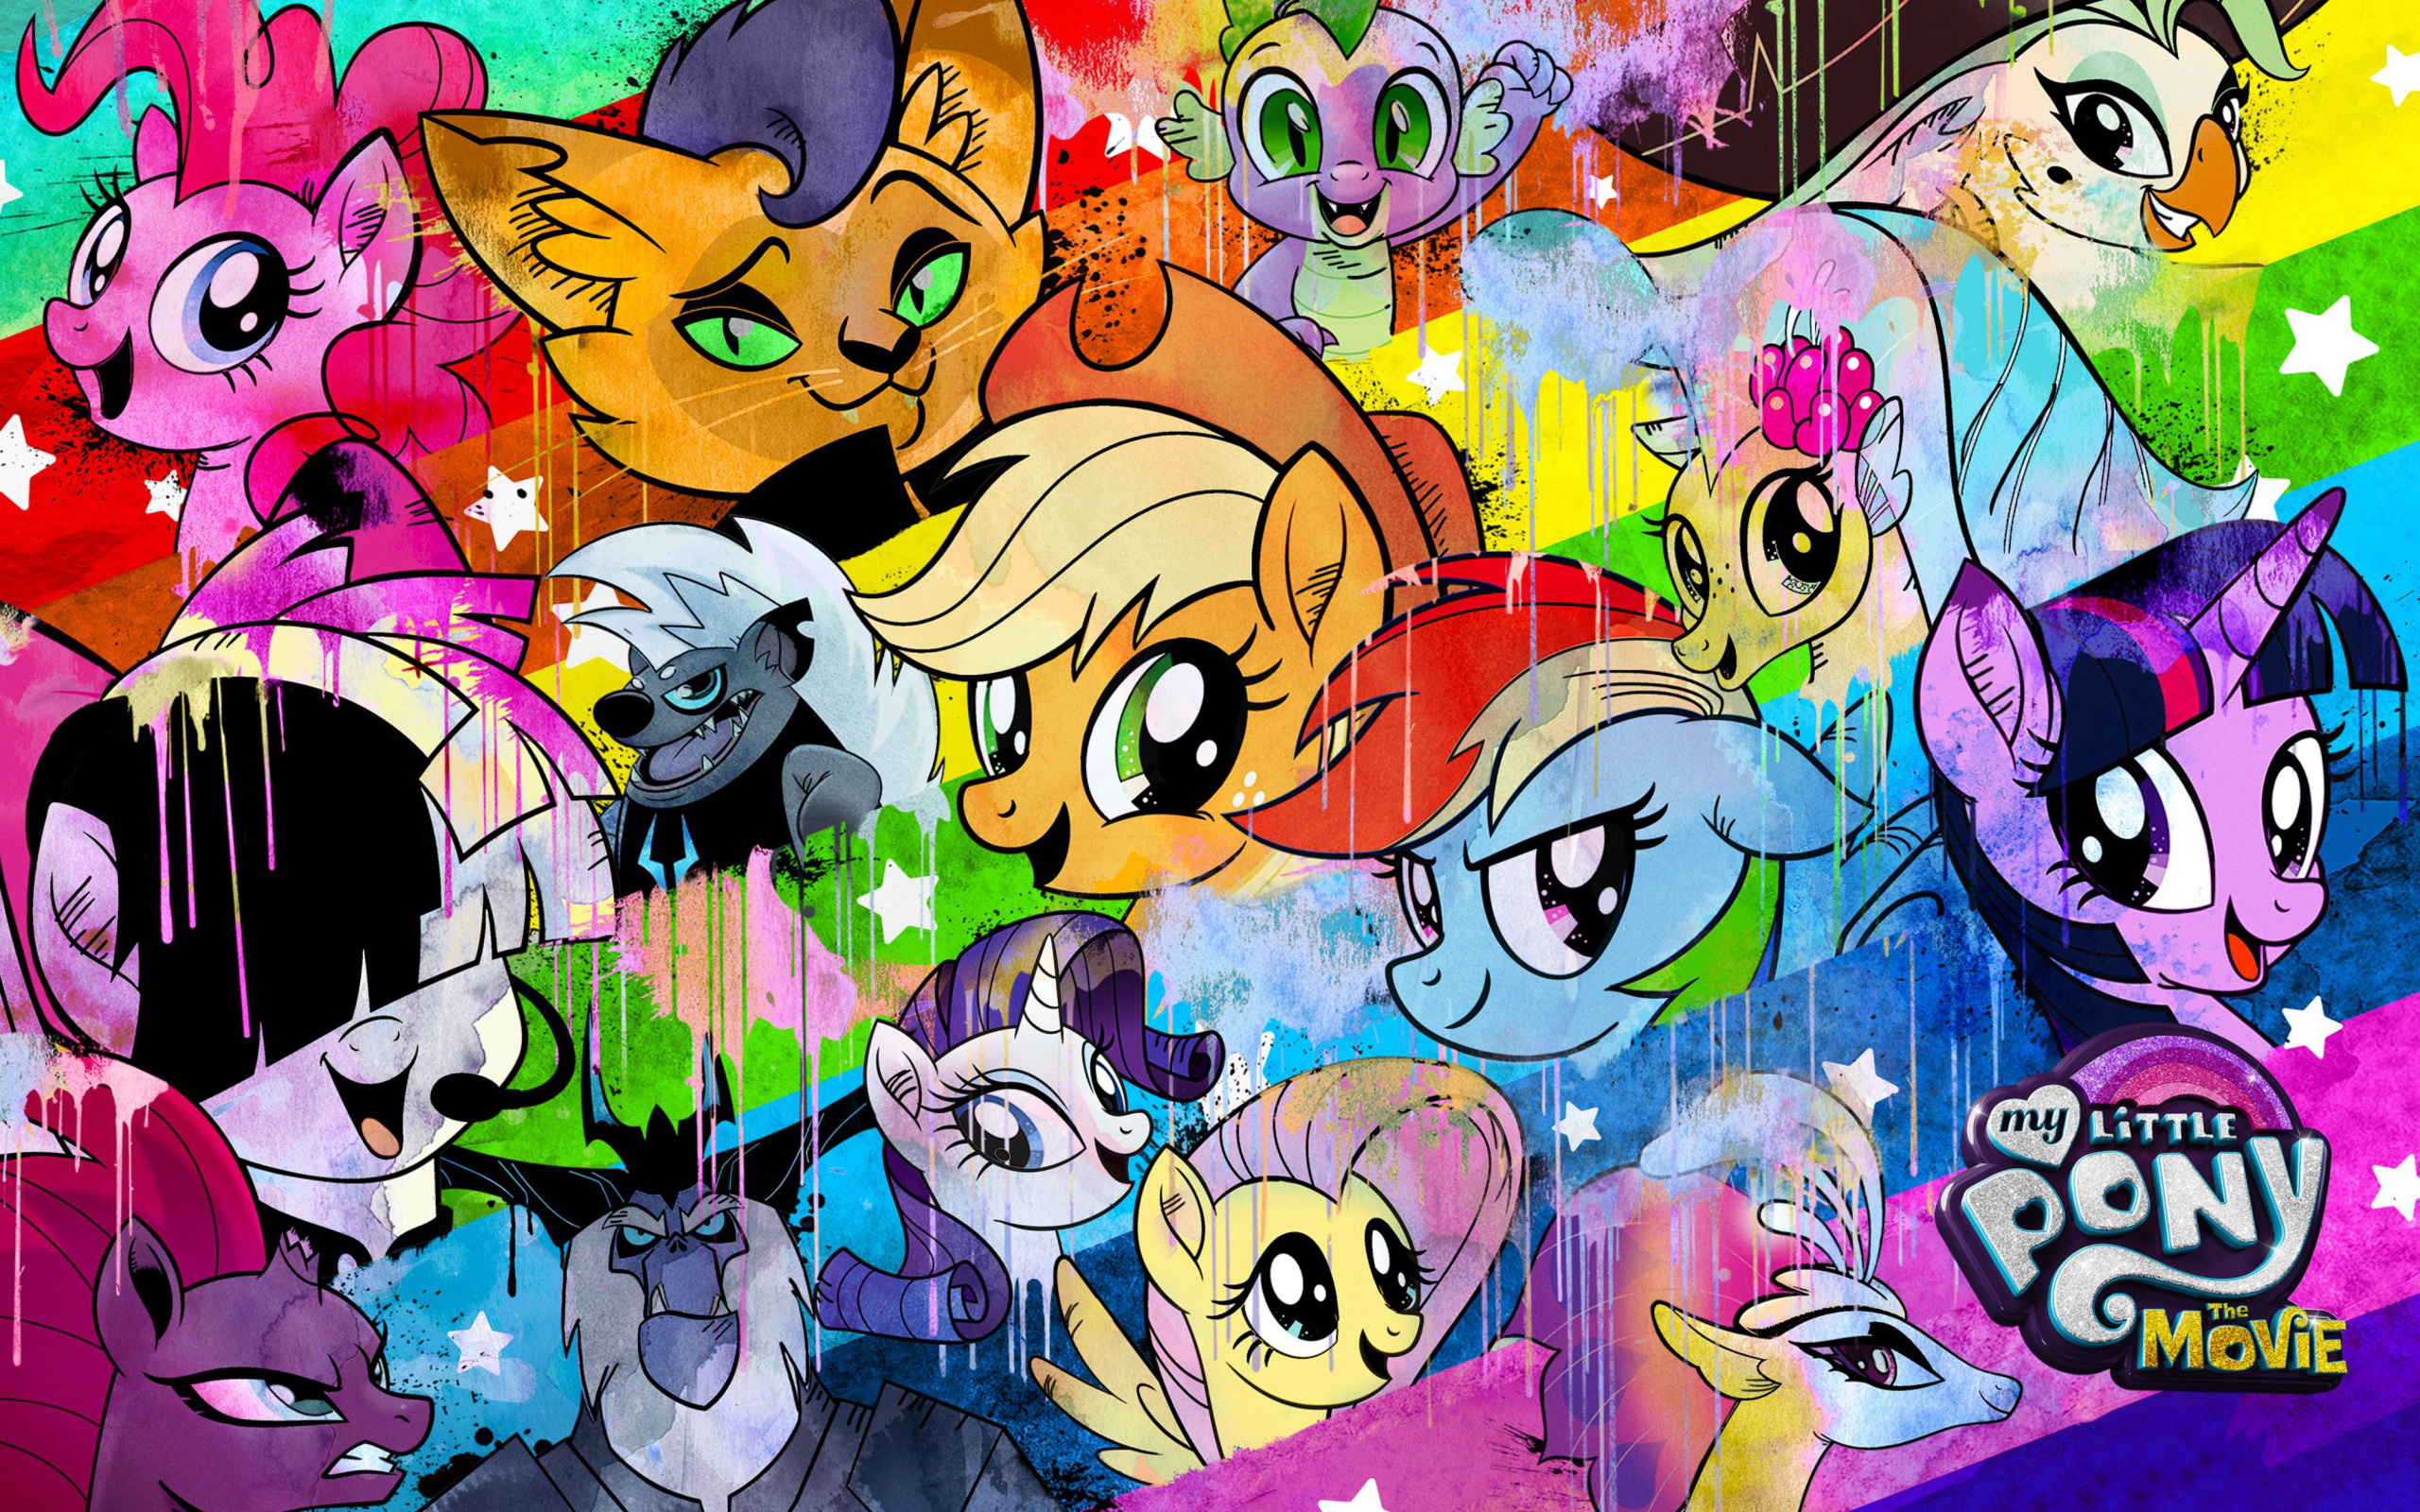 2560x1600 My Little Pony Movie 2560x1600 Resolution Hd 4k